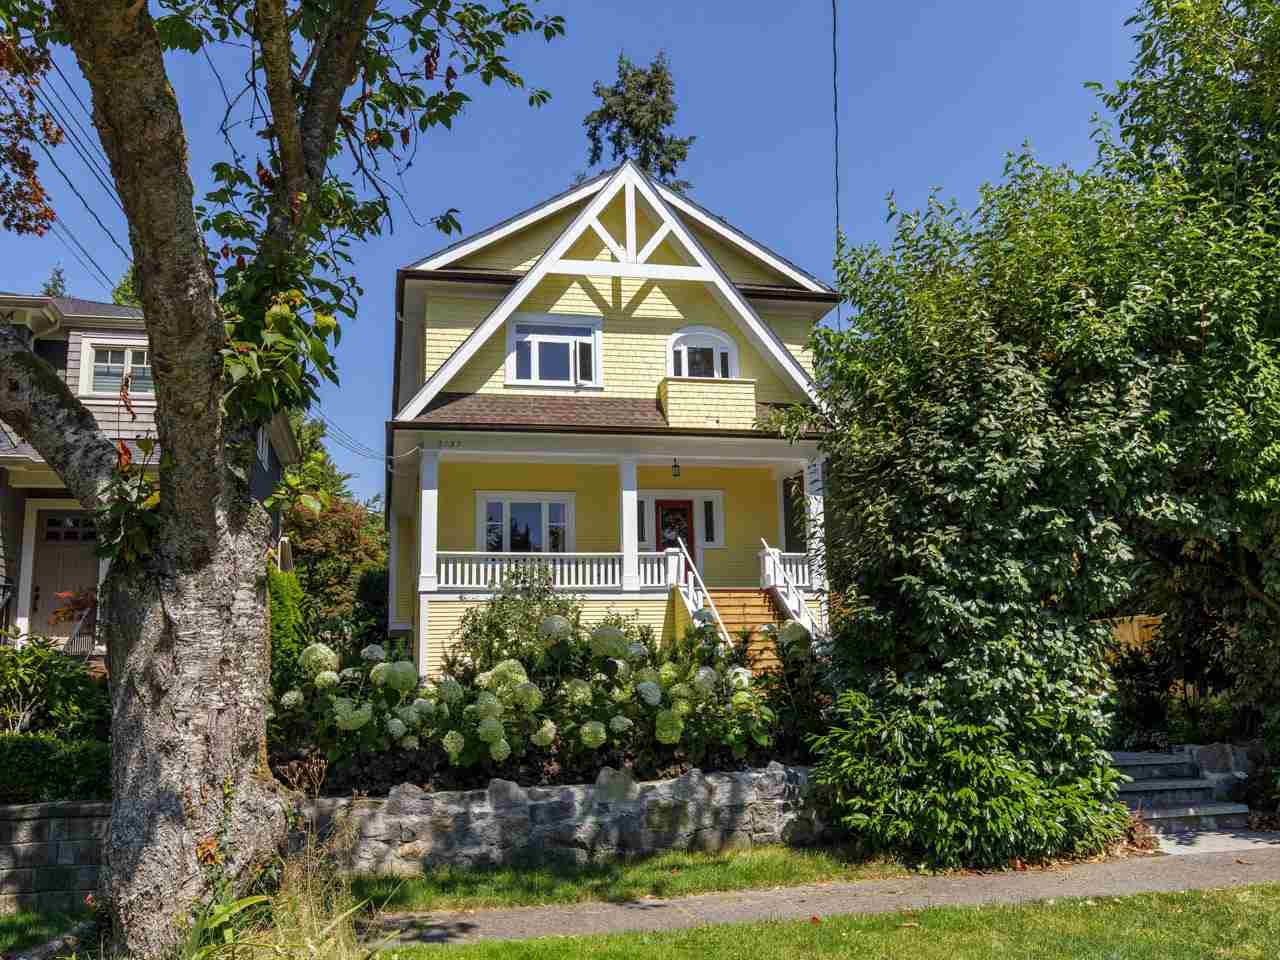 3137 W 42ND AVENUE - Kerrisdale House/Single Family for sale, 5 Bedrooms (R2482679)